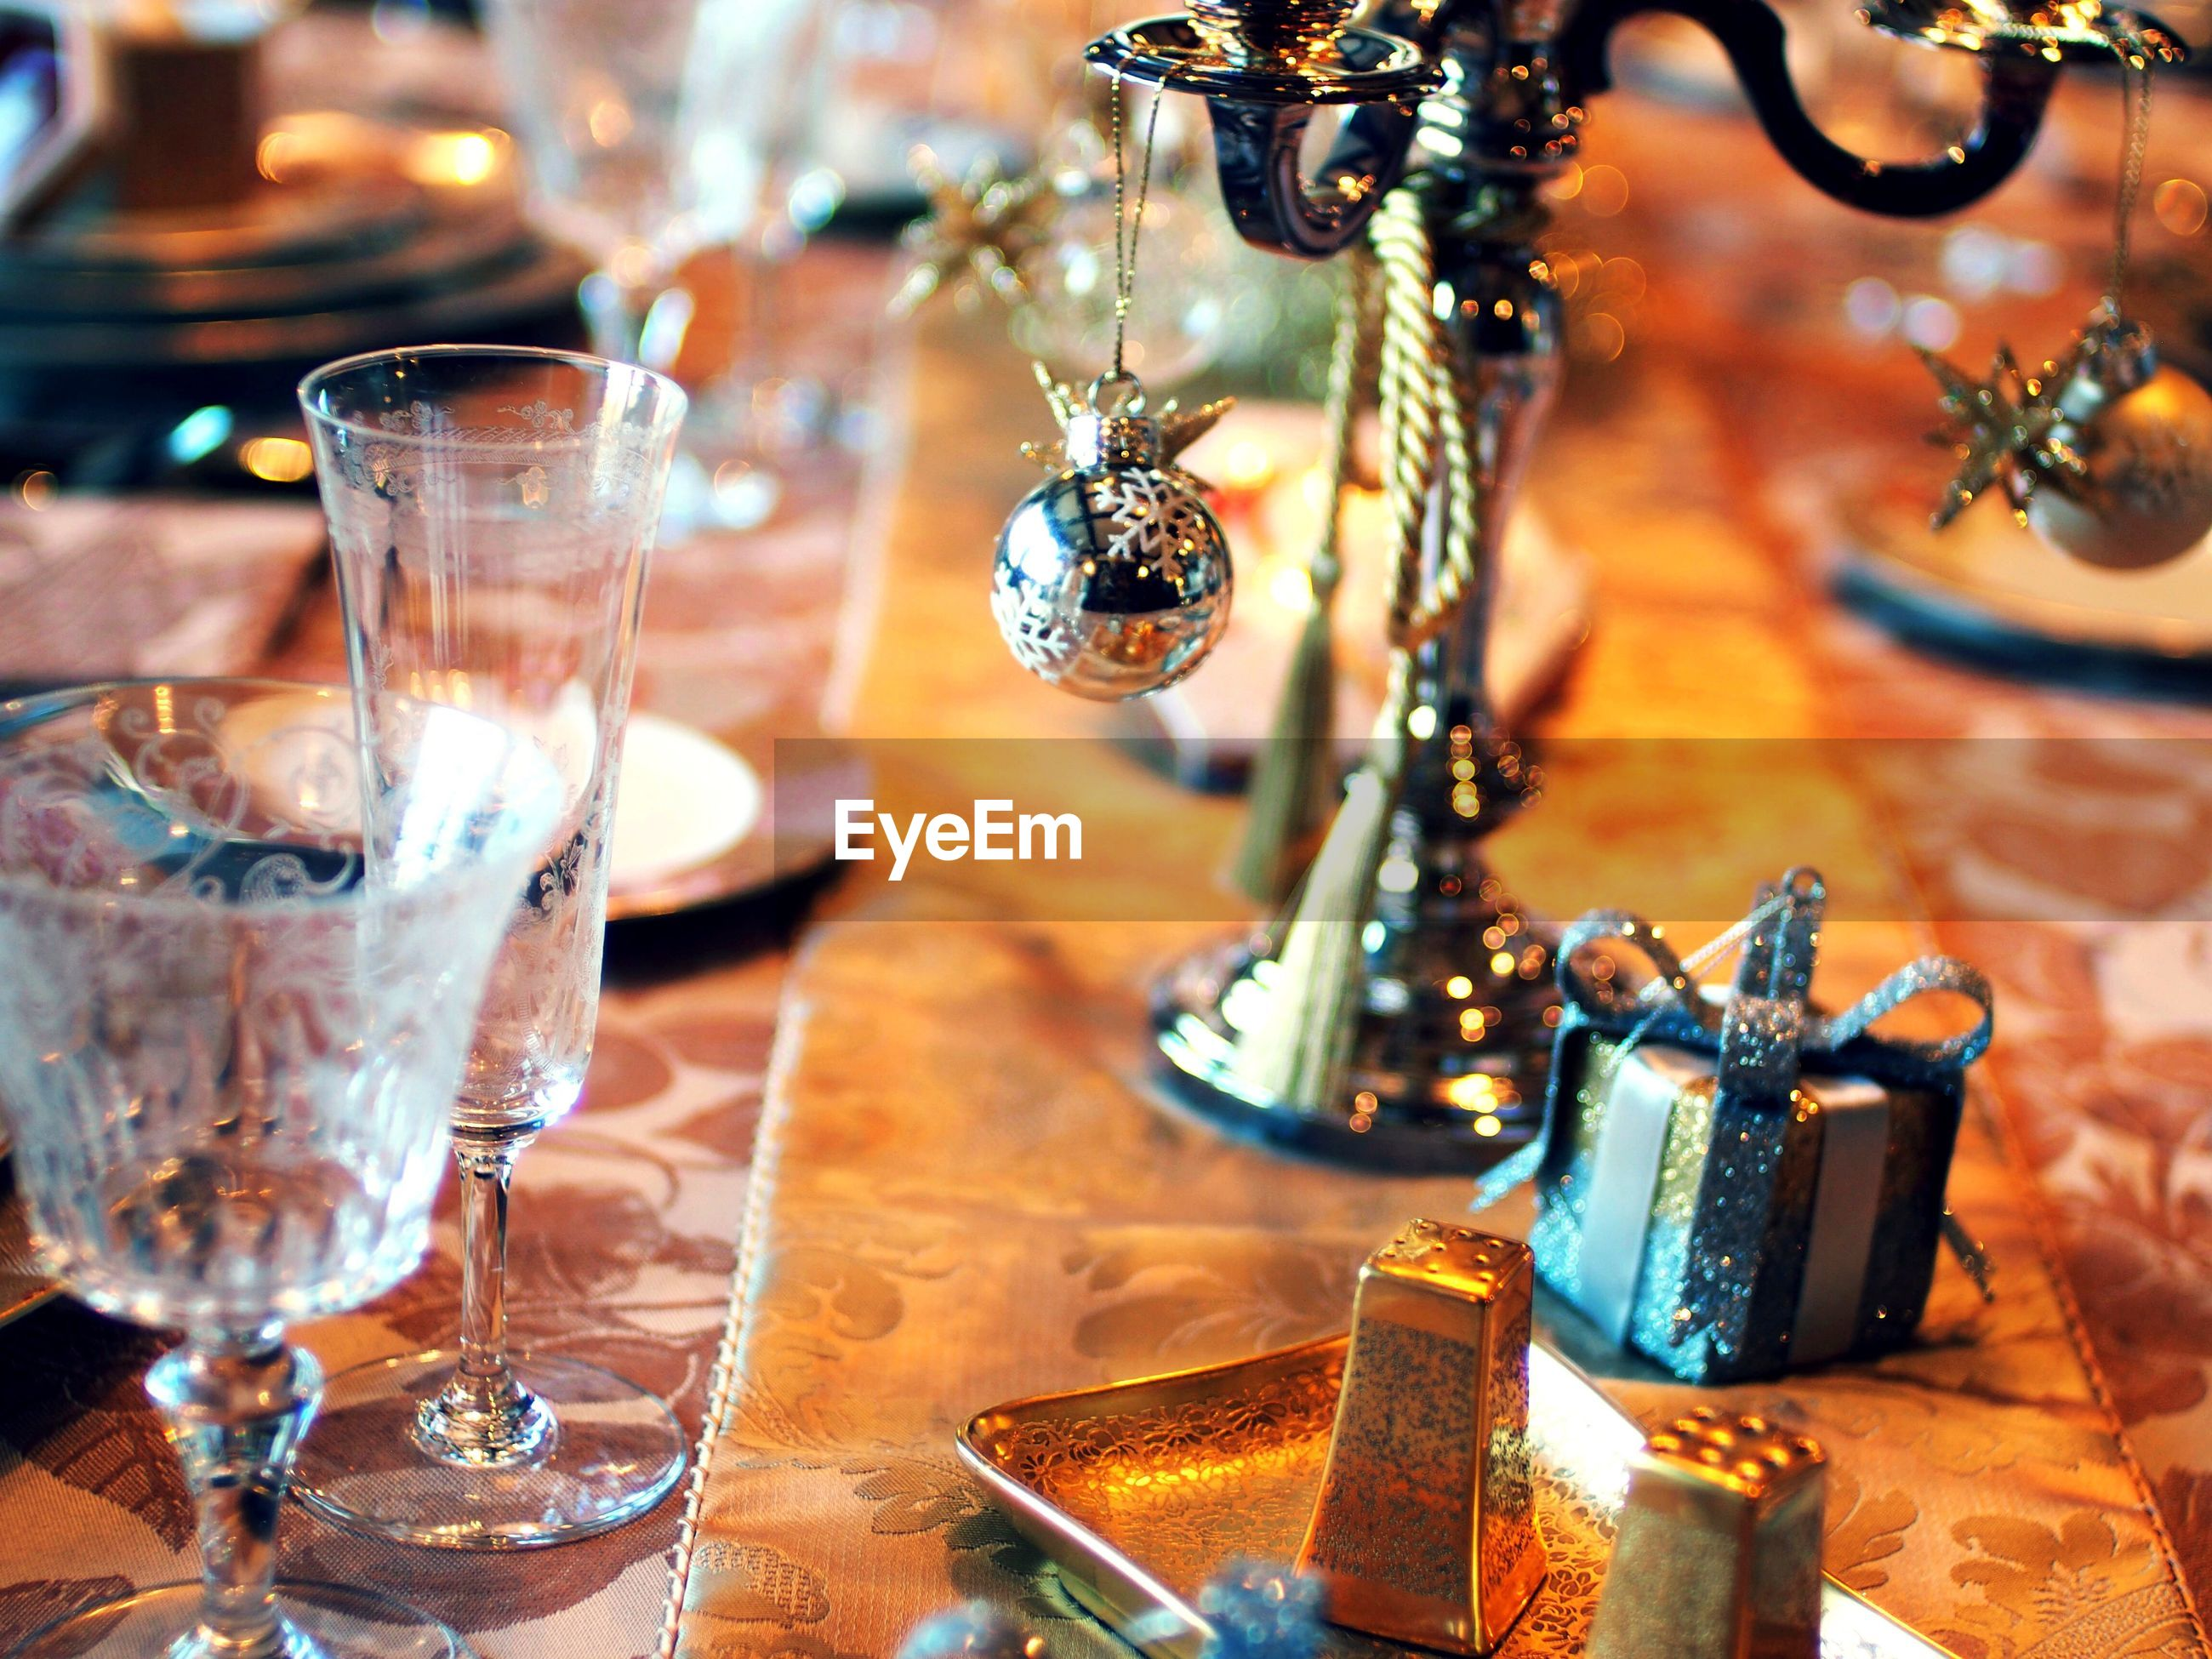 indoors, focus on foreground, table, close-up, insect, hanging, animal themes, glass - material, selective focus, no people, decoration, still life, metal, day, one animal, animals in the wild, nature, wood - material, transparent